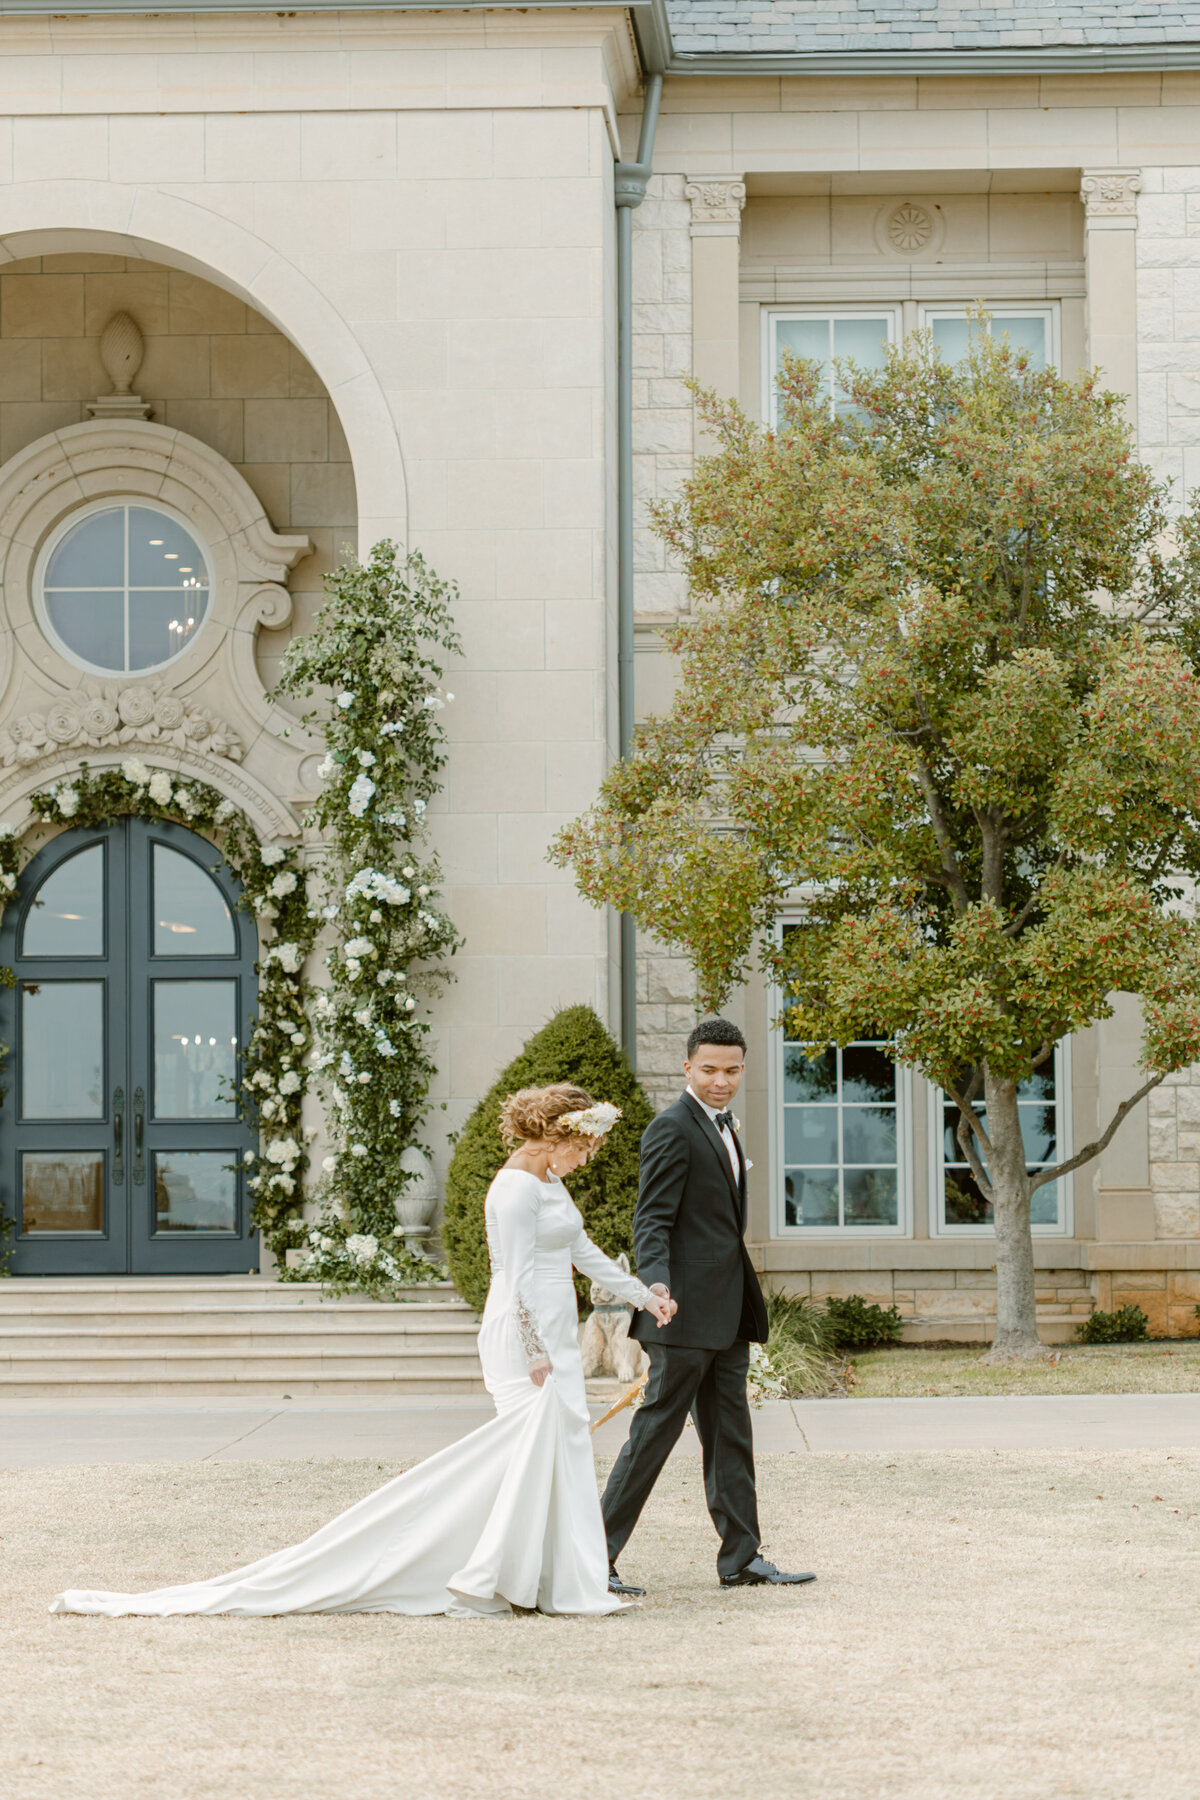 Bride and groom hold hands and walk outside their wedding venue covered in flowers